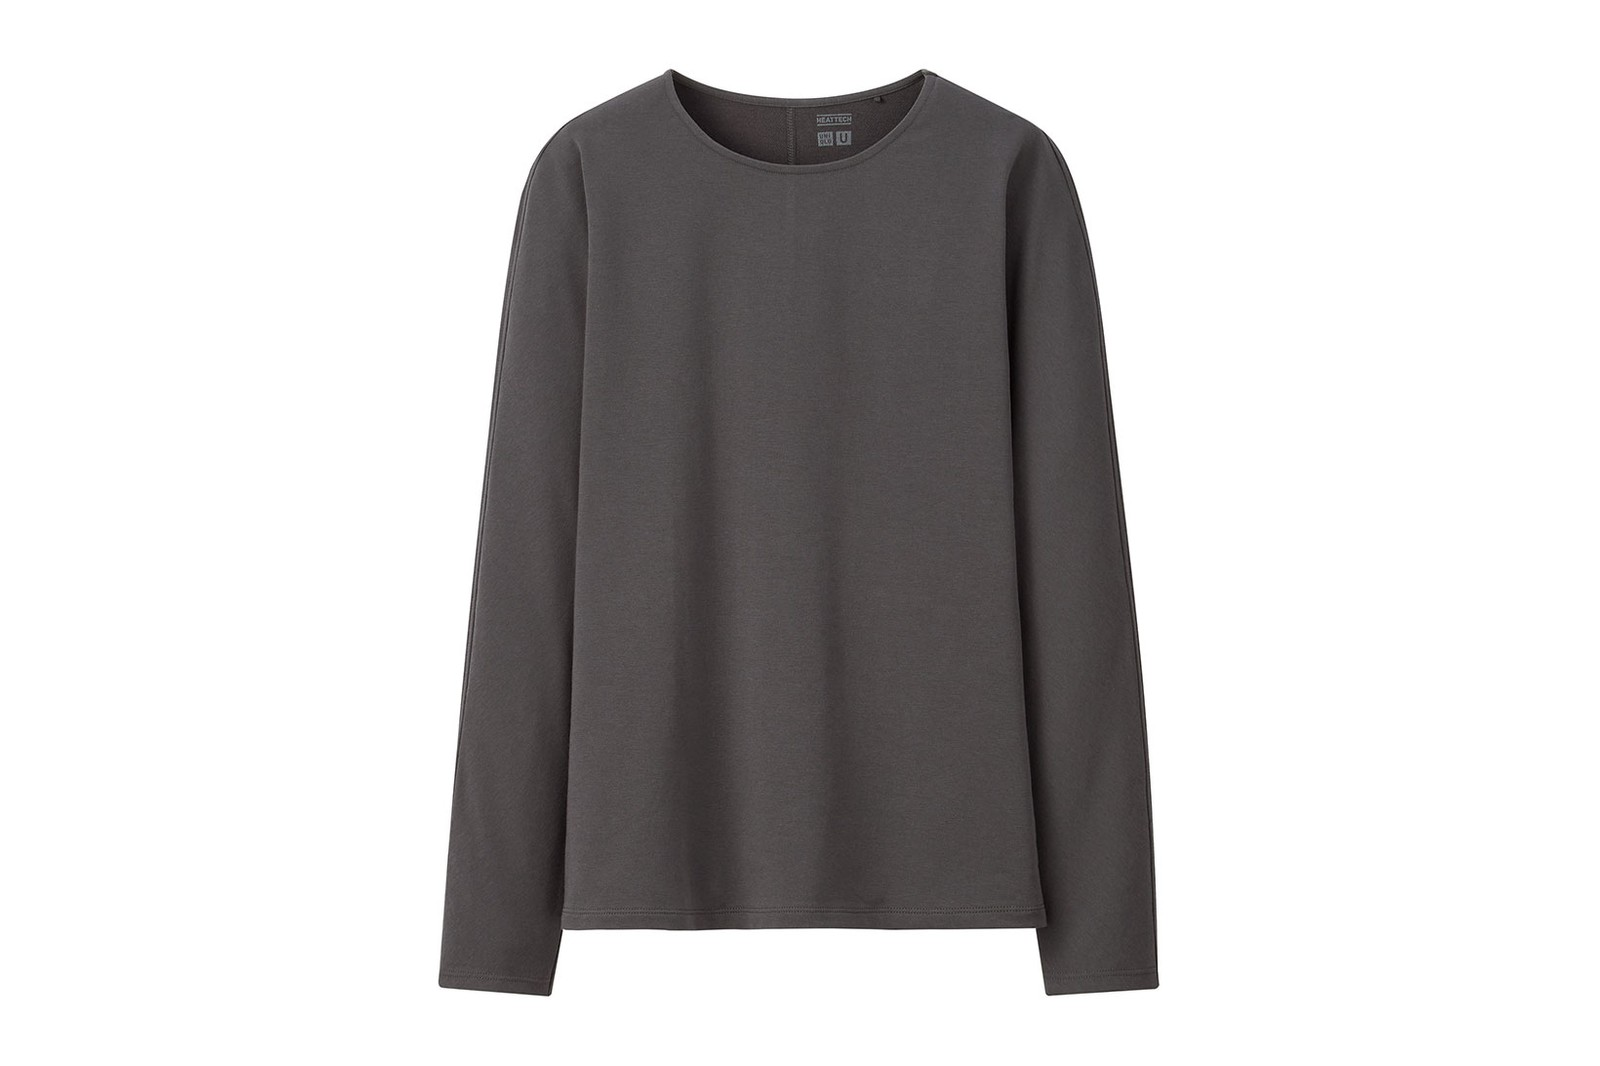 uniqlo u heattech long-sleeved t-shirts fall winter essentials christophe lemaire release